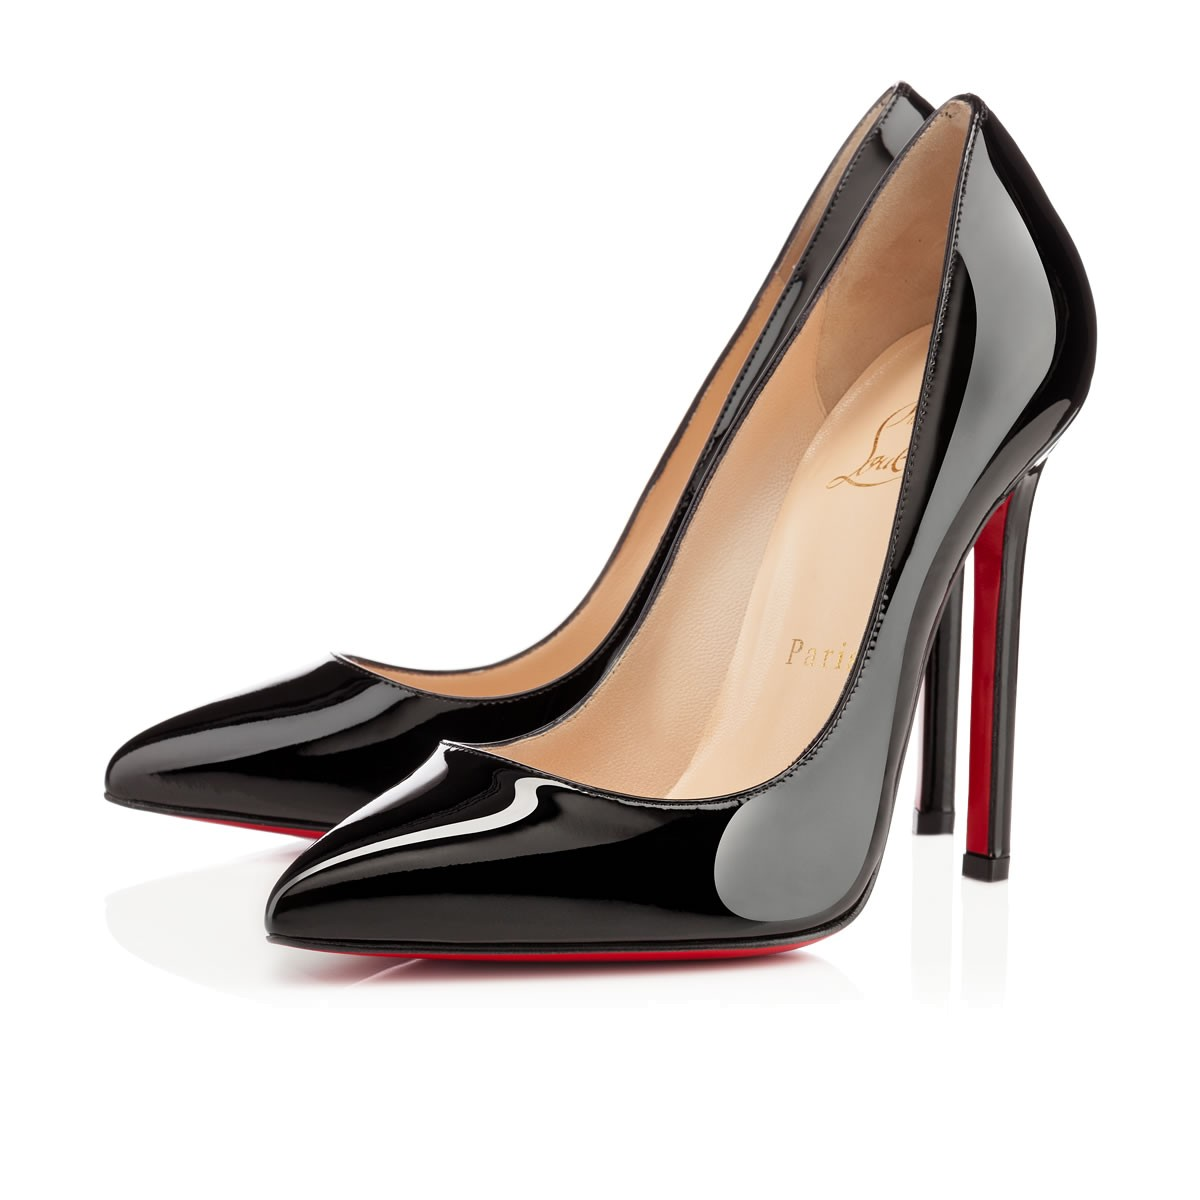 8a6482b0491 Christian Louboutin's iconic Pigalle high heels turn 10 years old ...